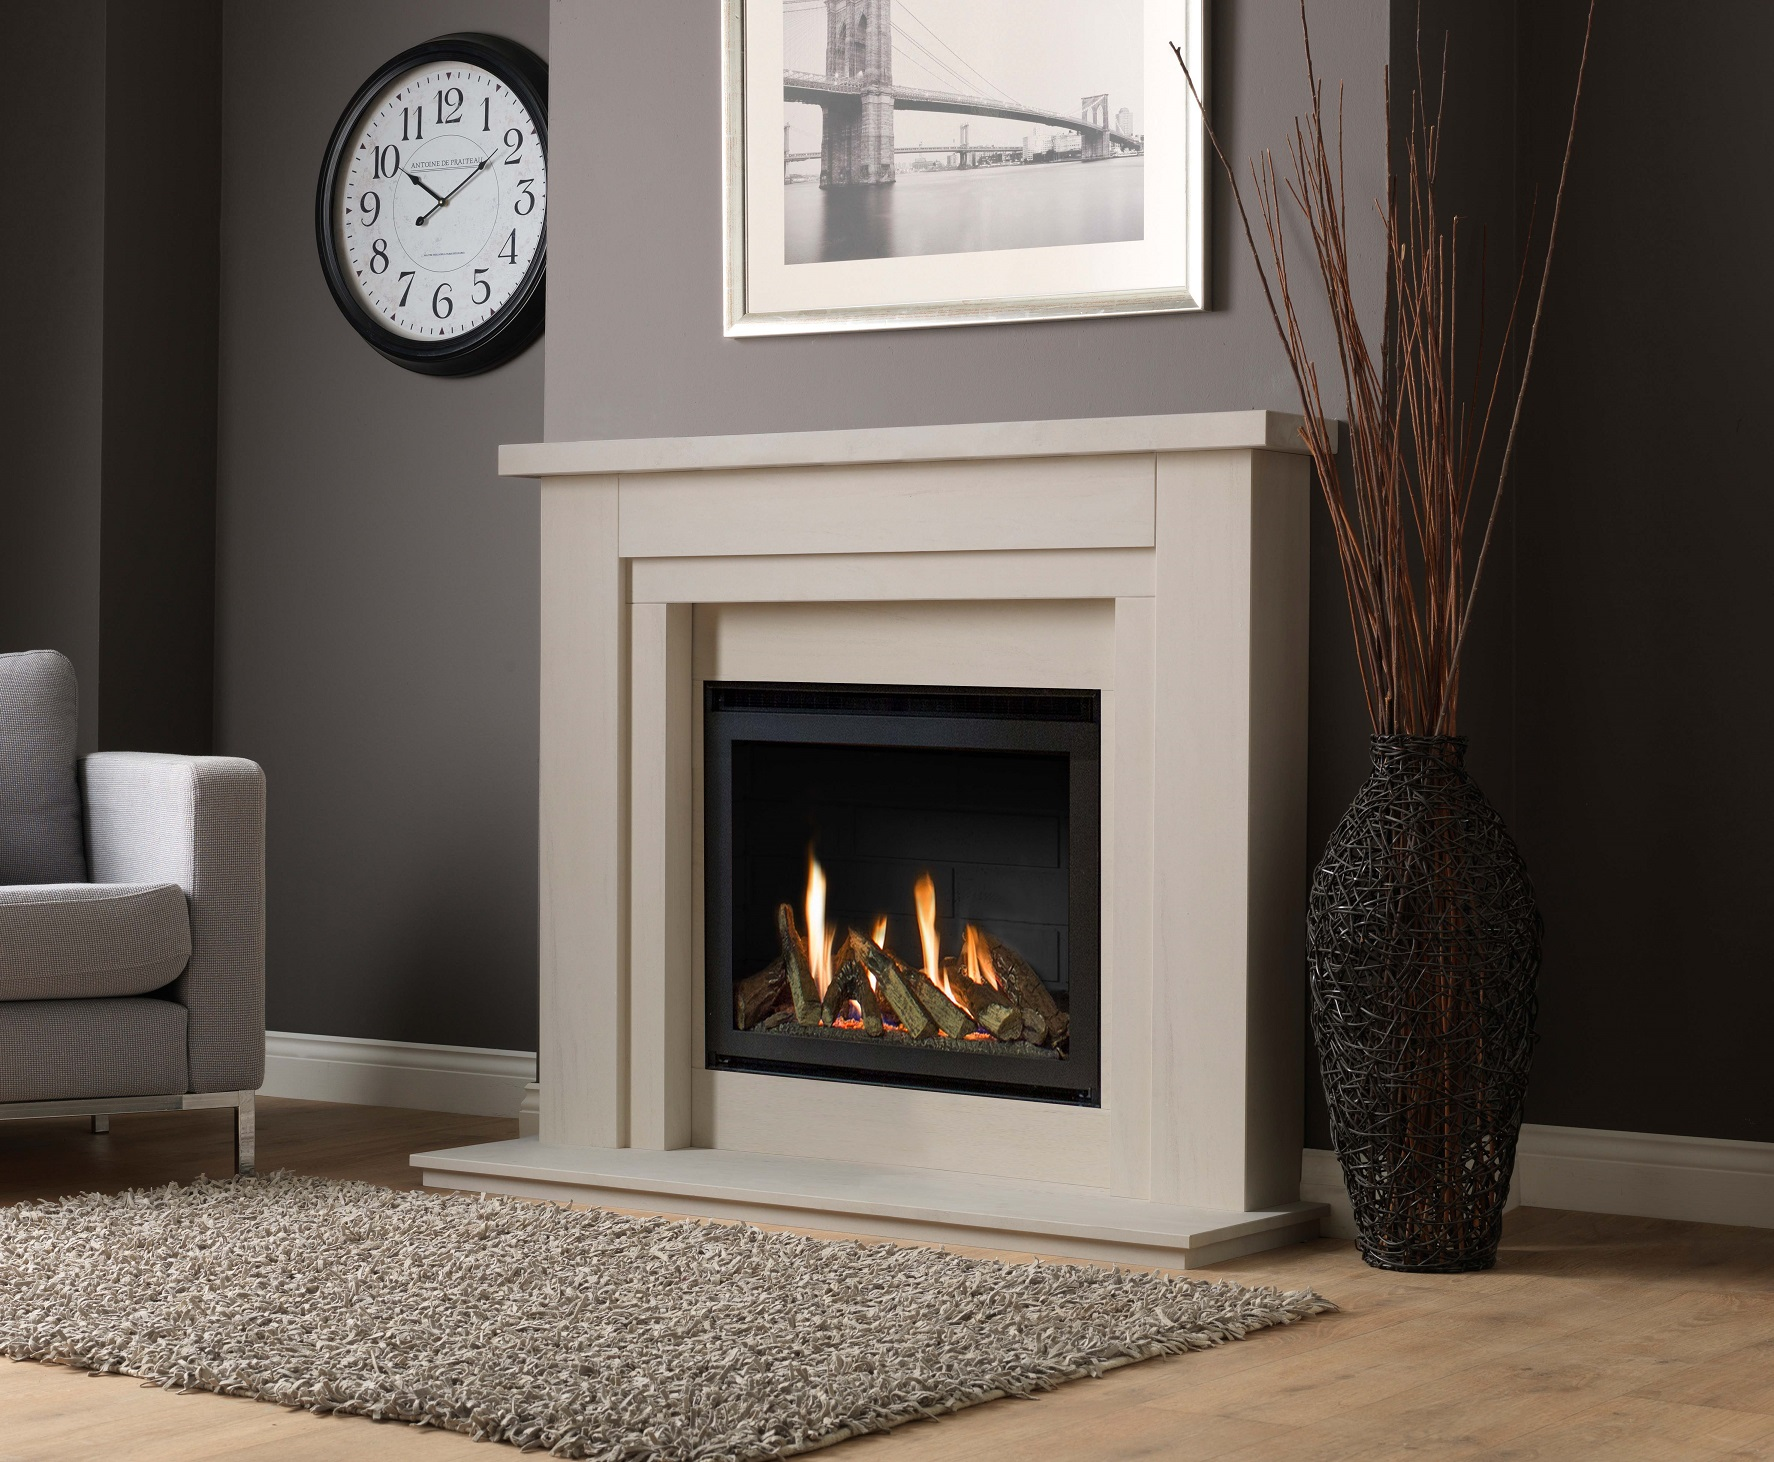 Hanley-54-Limestone-with-chelsea-gas-log-fire